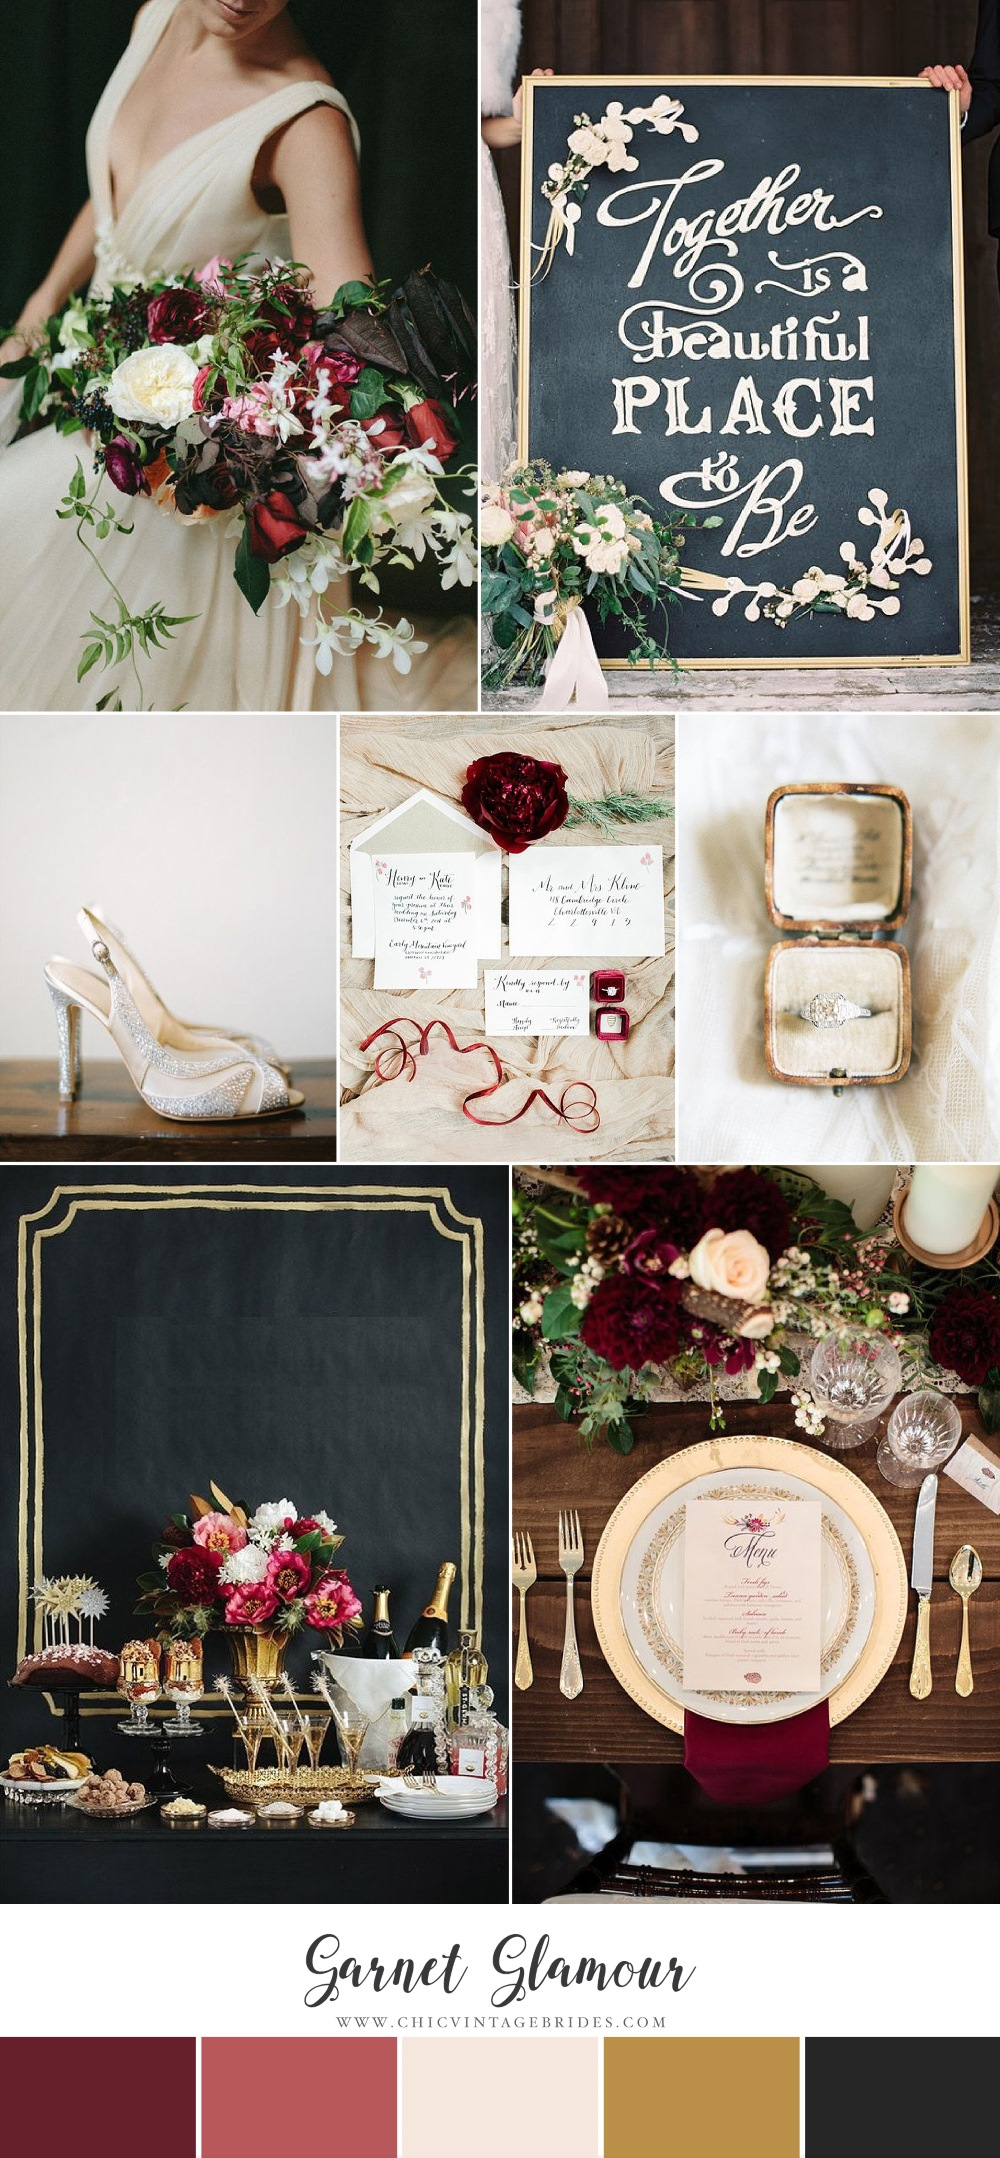 Garnet Glamour - Glittering Winter Wedding Inspiration in Garnet & Gold